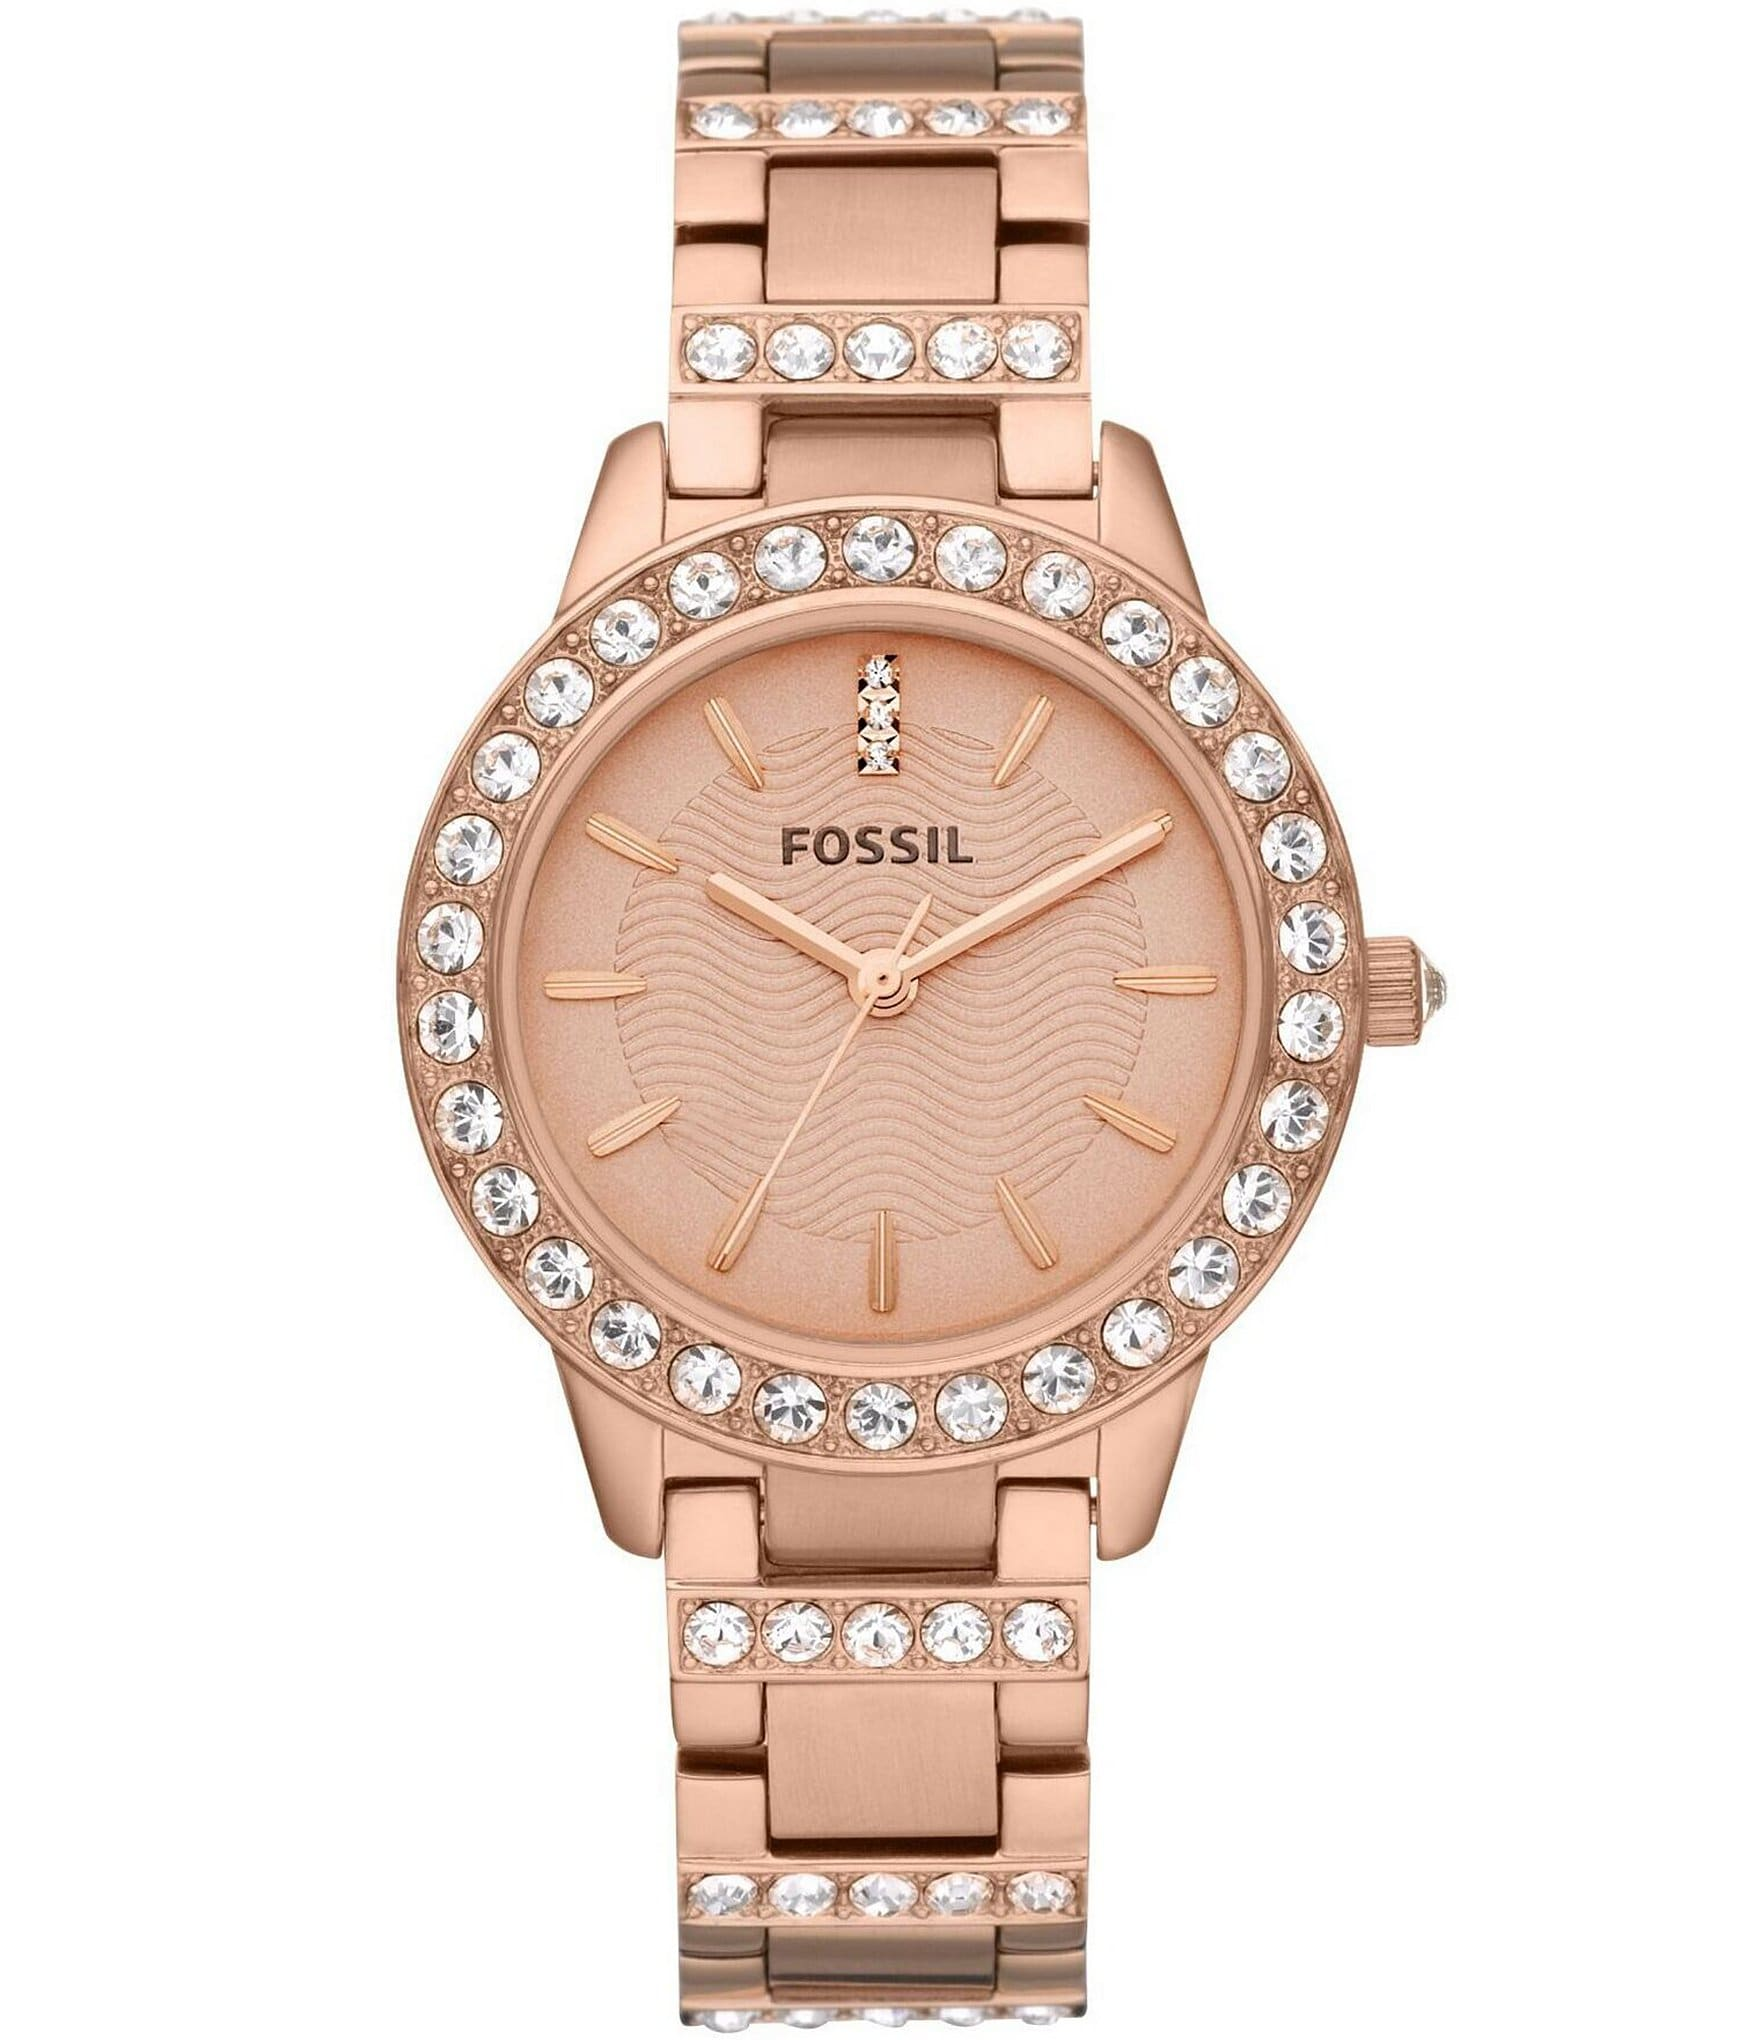 Fossil watches rose gold